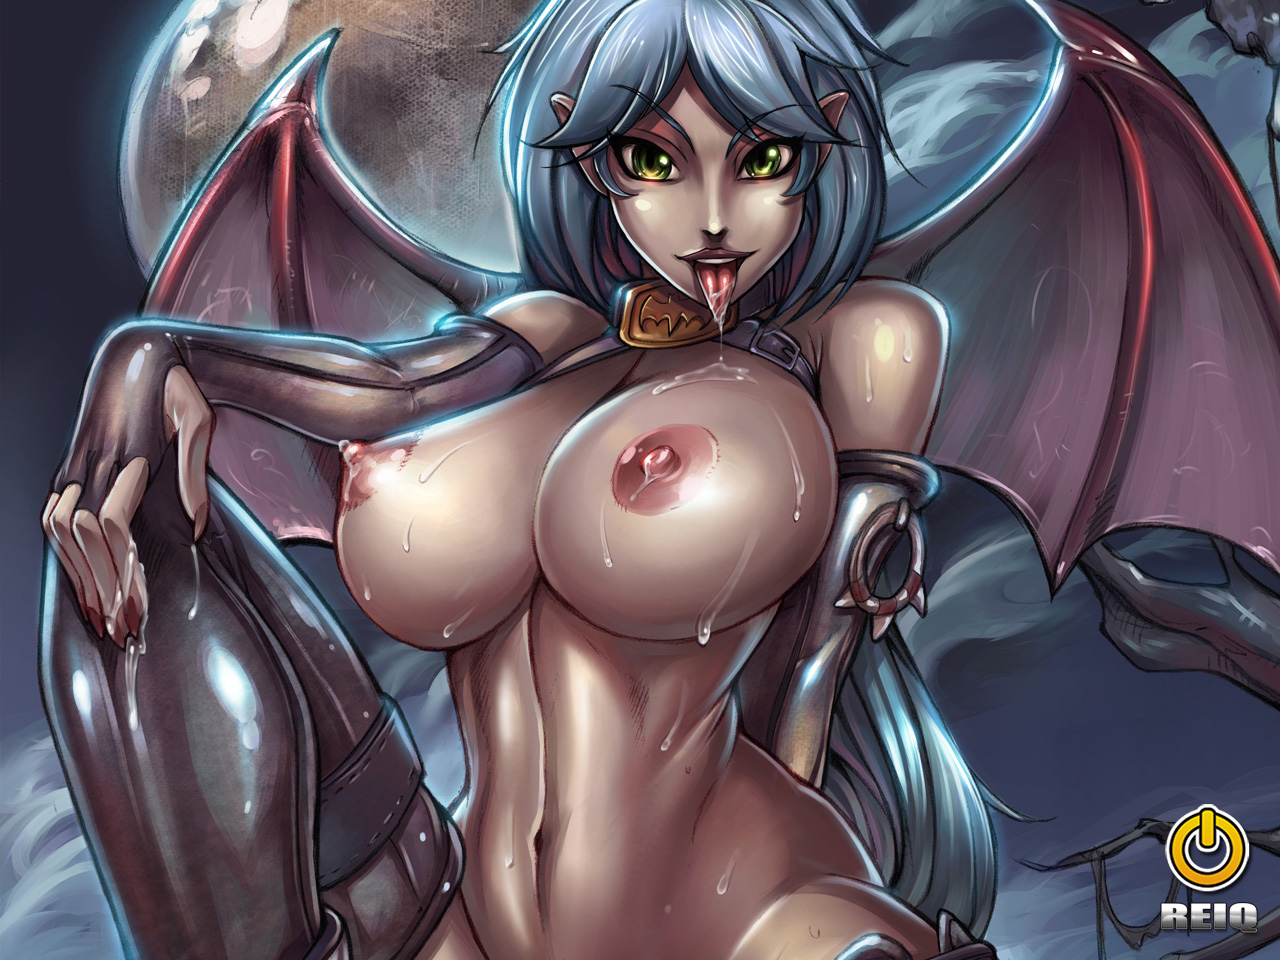 Hentai big tit fucked by hero succubus erotic pink bitches